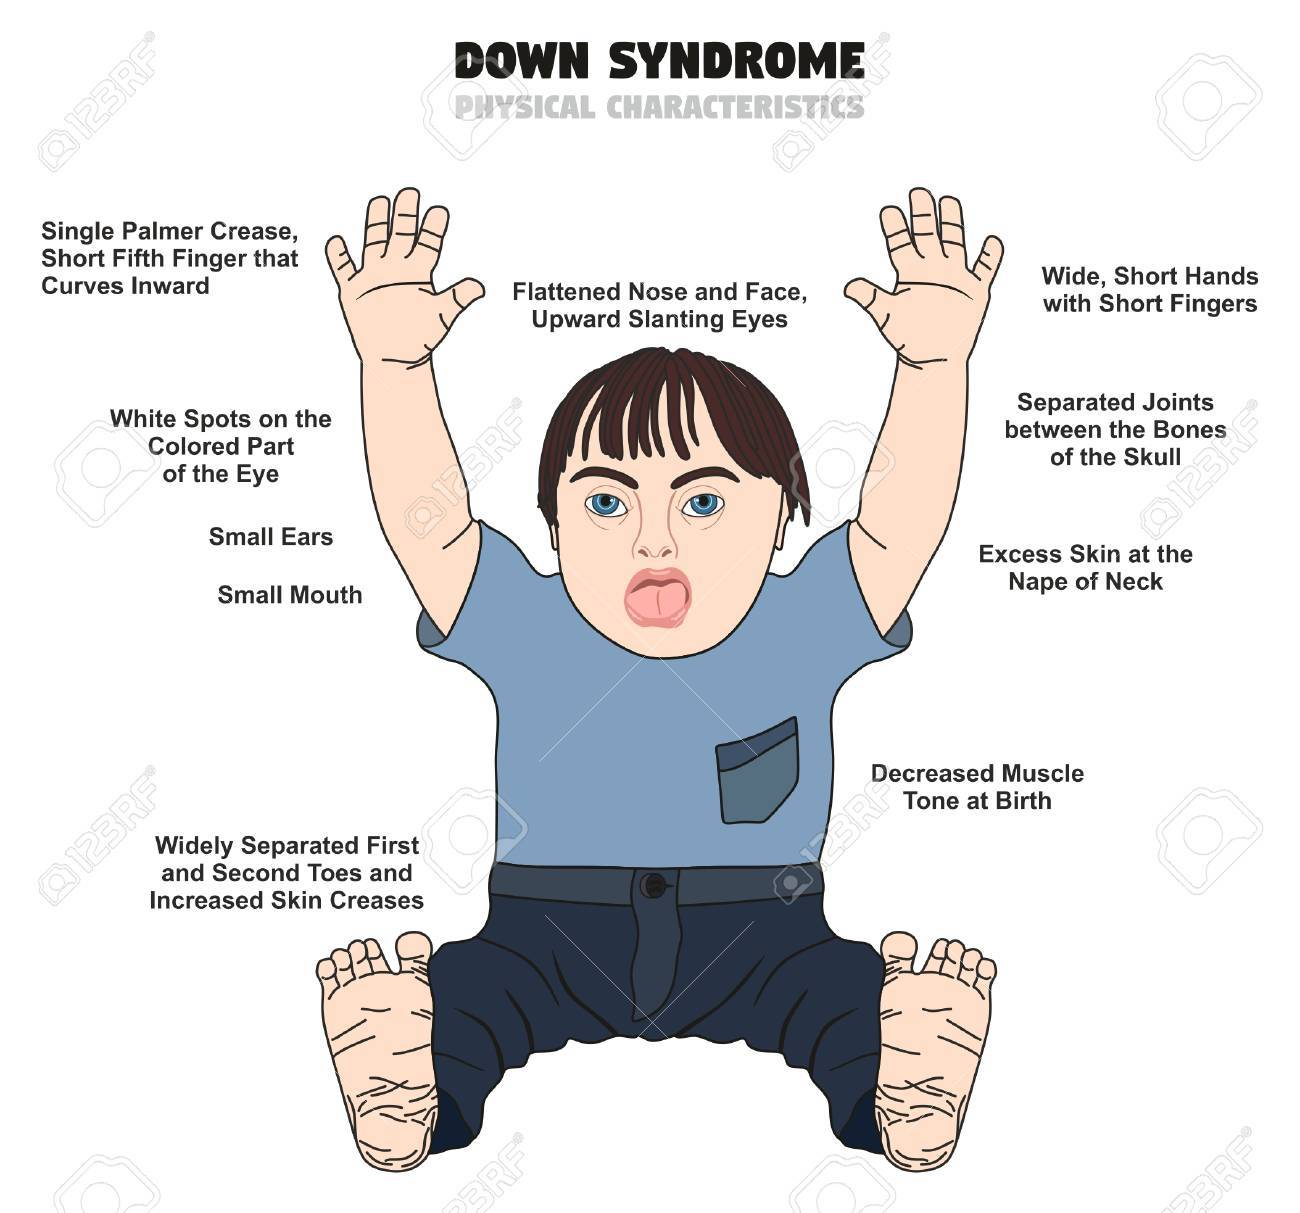 down syndrome physical characteristics infographic diagram showing affected  kid born with this disability for medical science